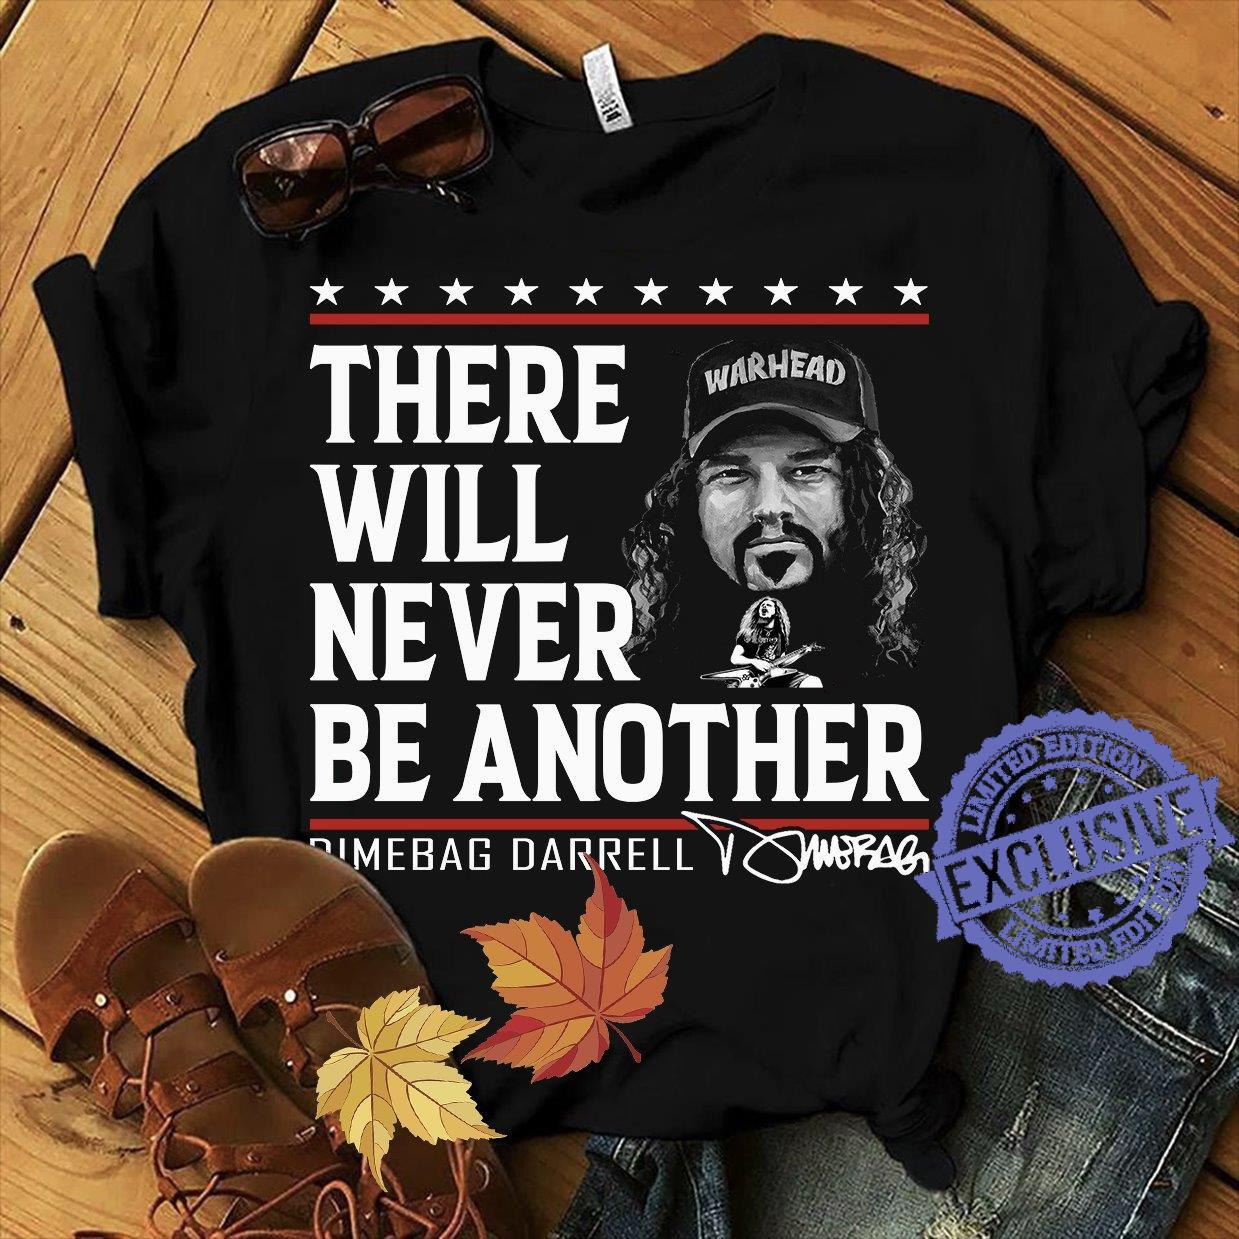 There will never be another dimebag darrell shirt